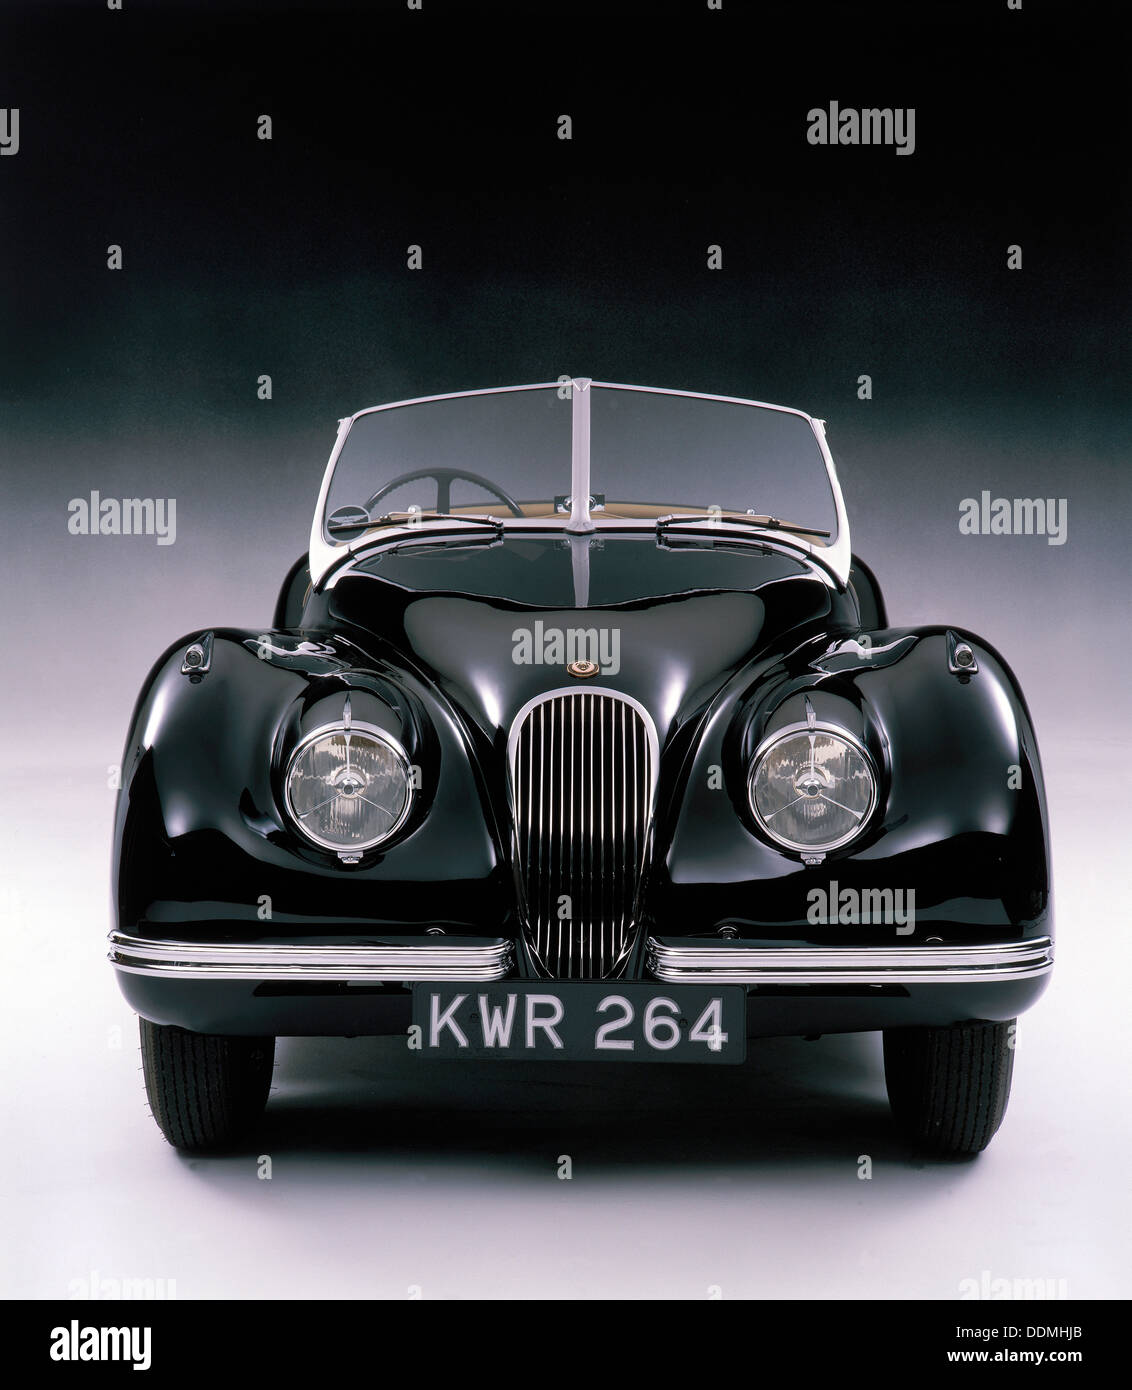 1950 Jaguar XK 120. - Stock Image